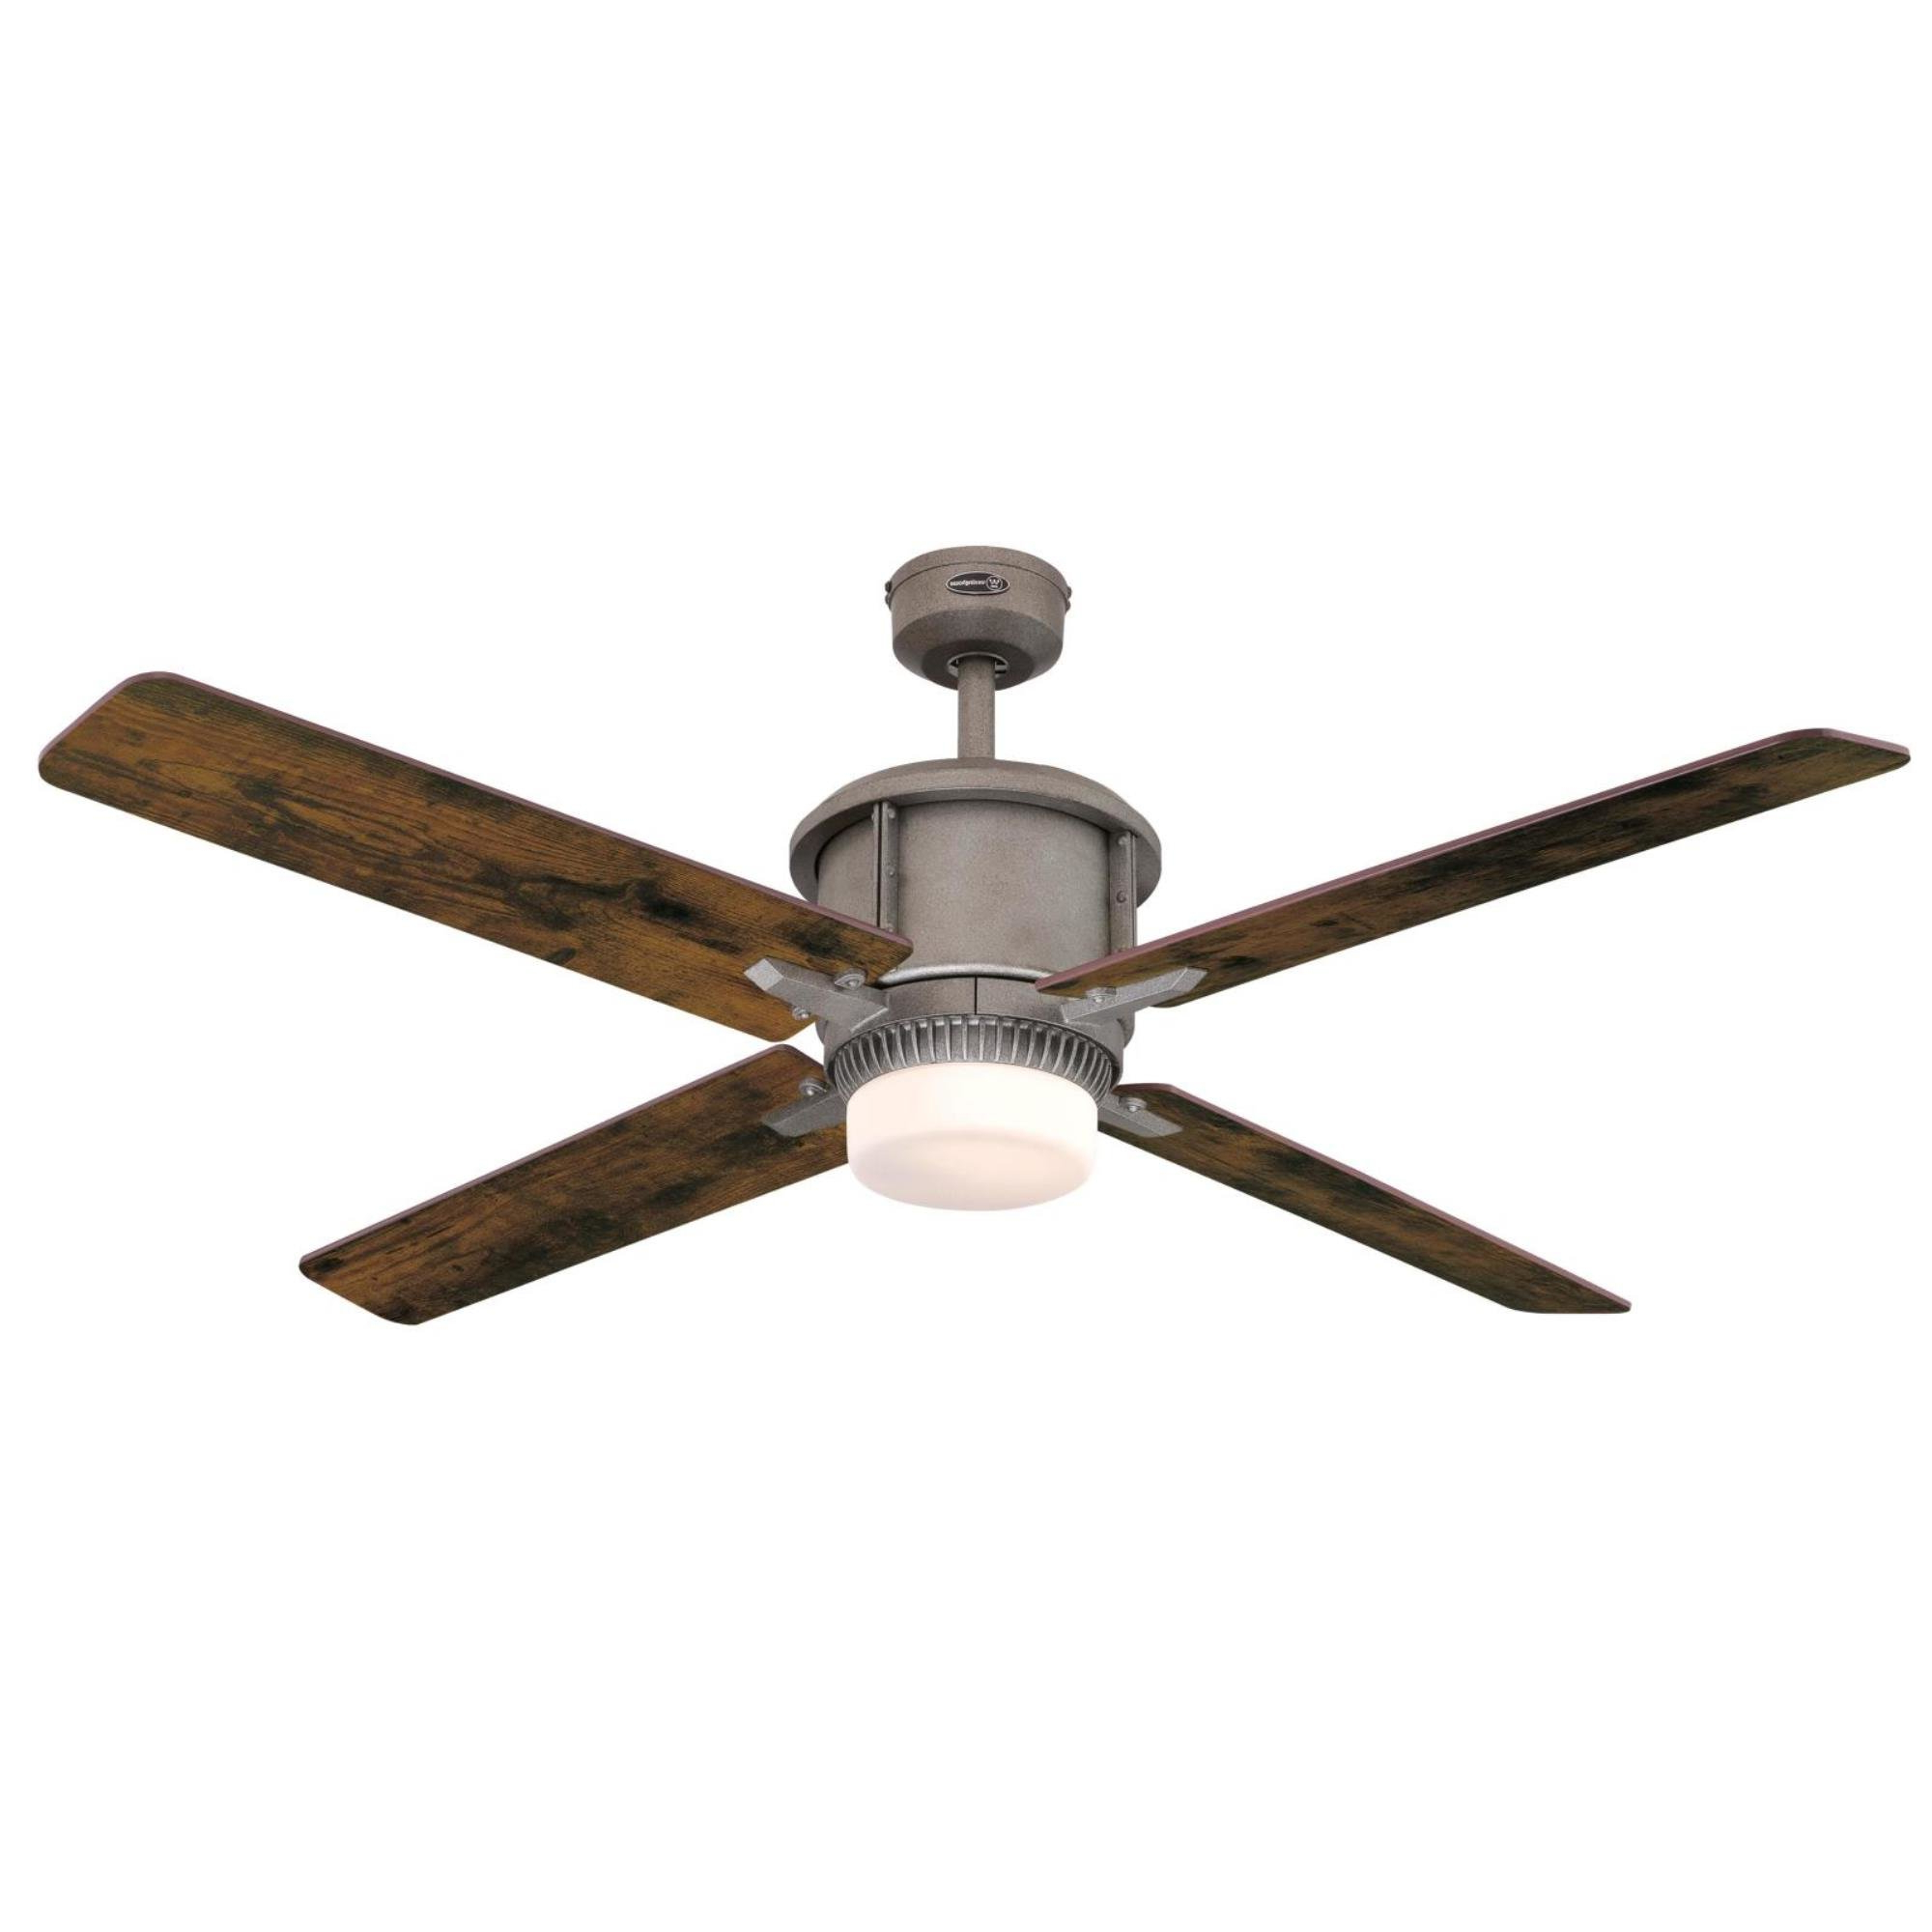 Preferred Industrial Style Light Kit Included Ceiling Fans You'll Love Throughout Calkins 5 Blade Ceiling Fans (View 19 of 20)